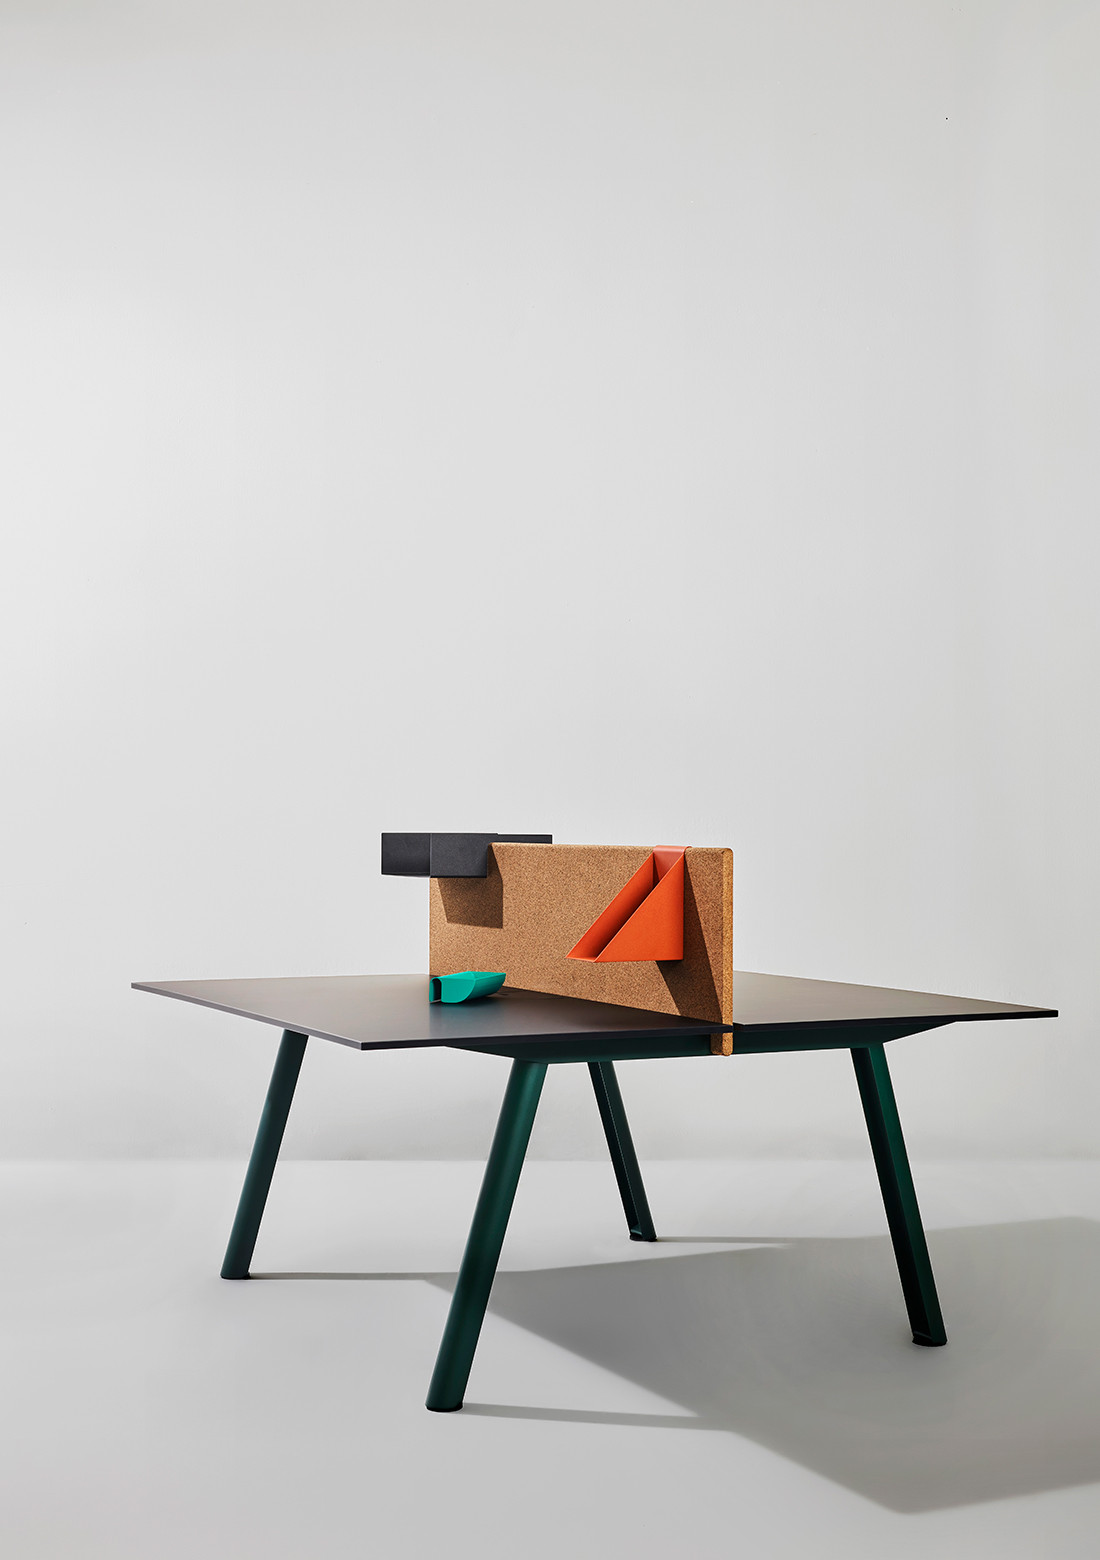 Apollo, the modular system of scalable desks by Shane Schneck for Manerba.